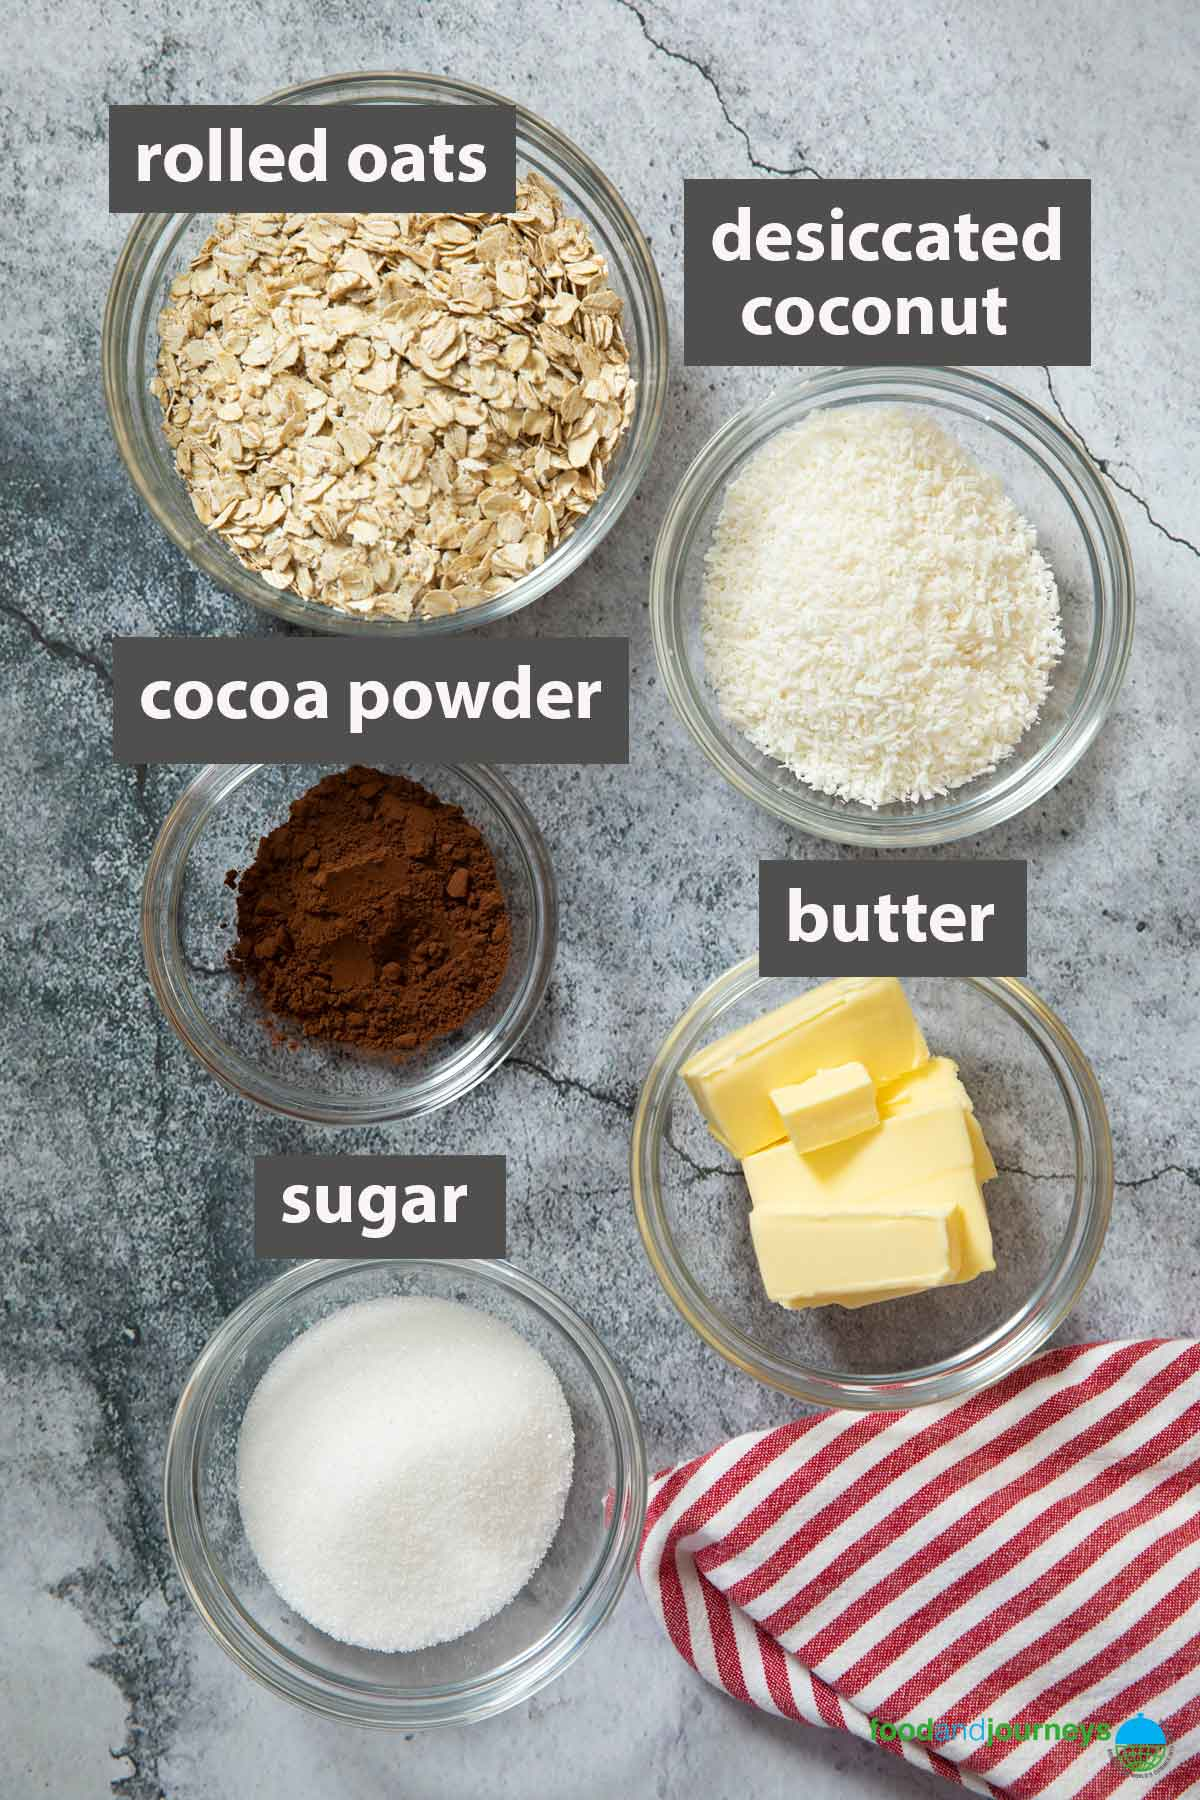 An image showing all the ingredients you need to prepare Swedish Chocolate Balls at home.